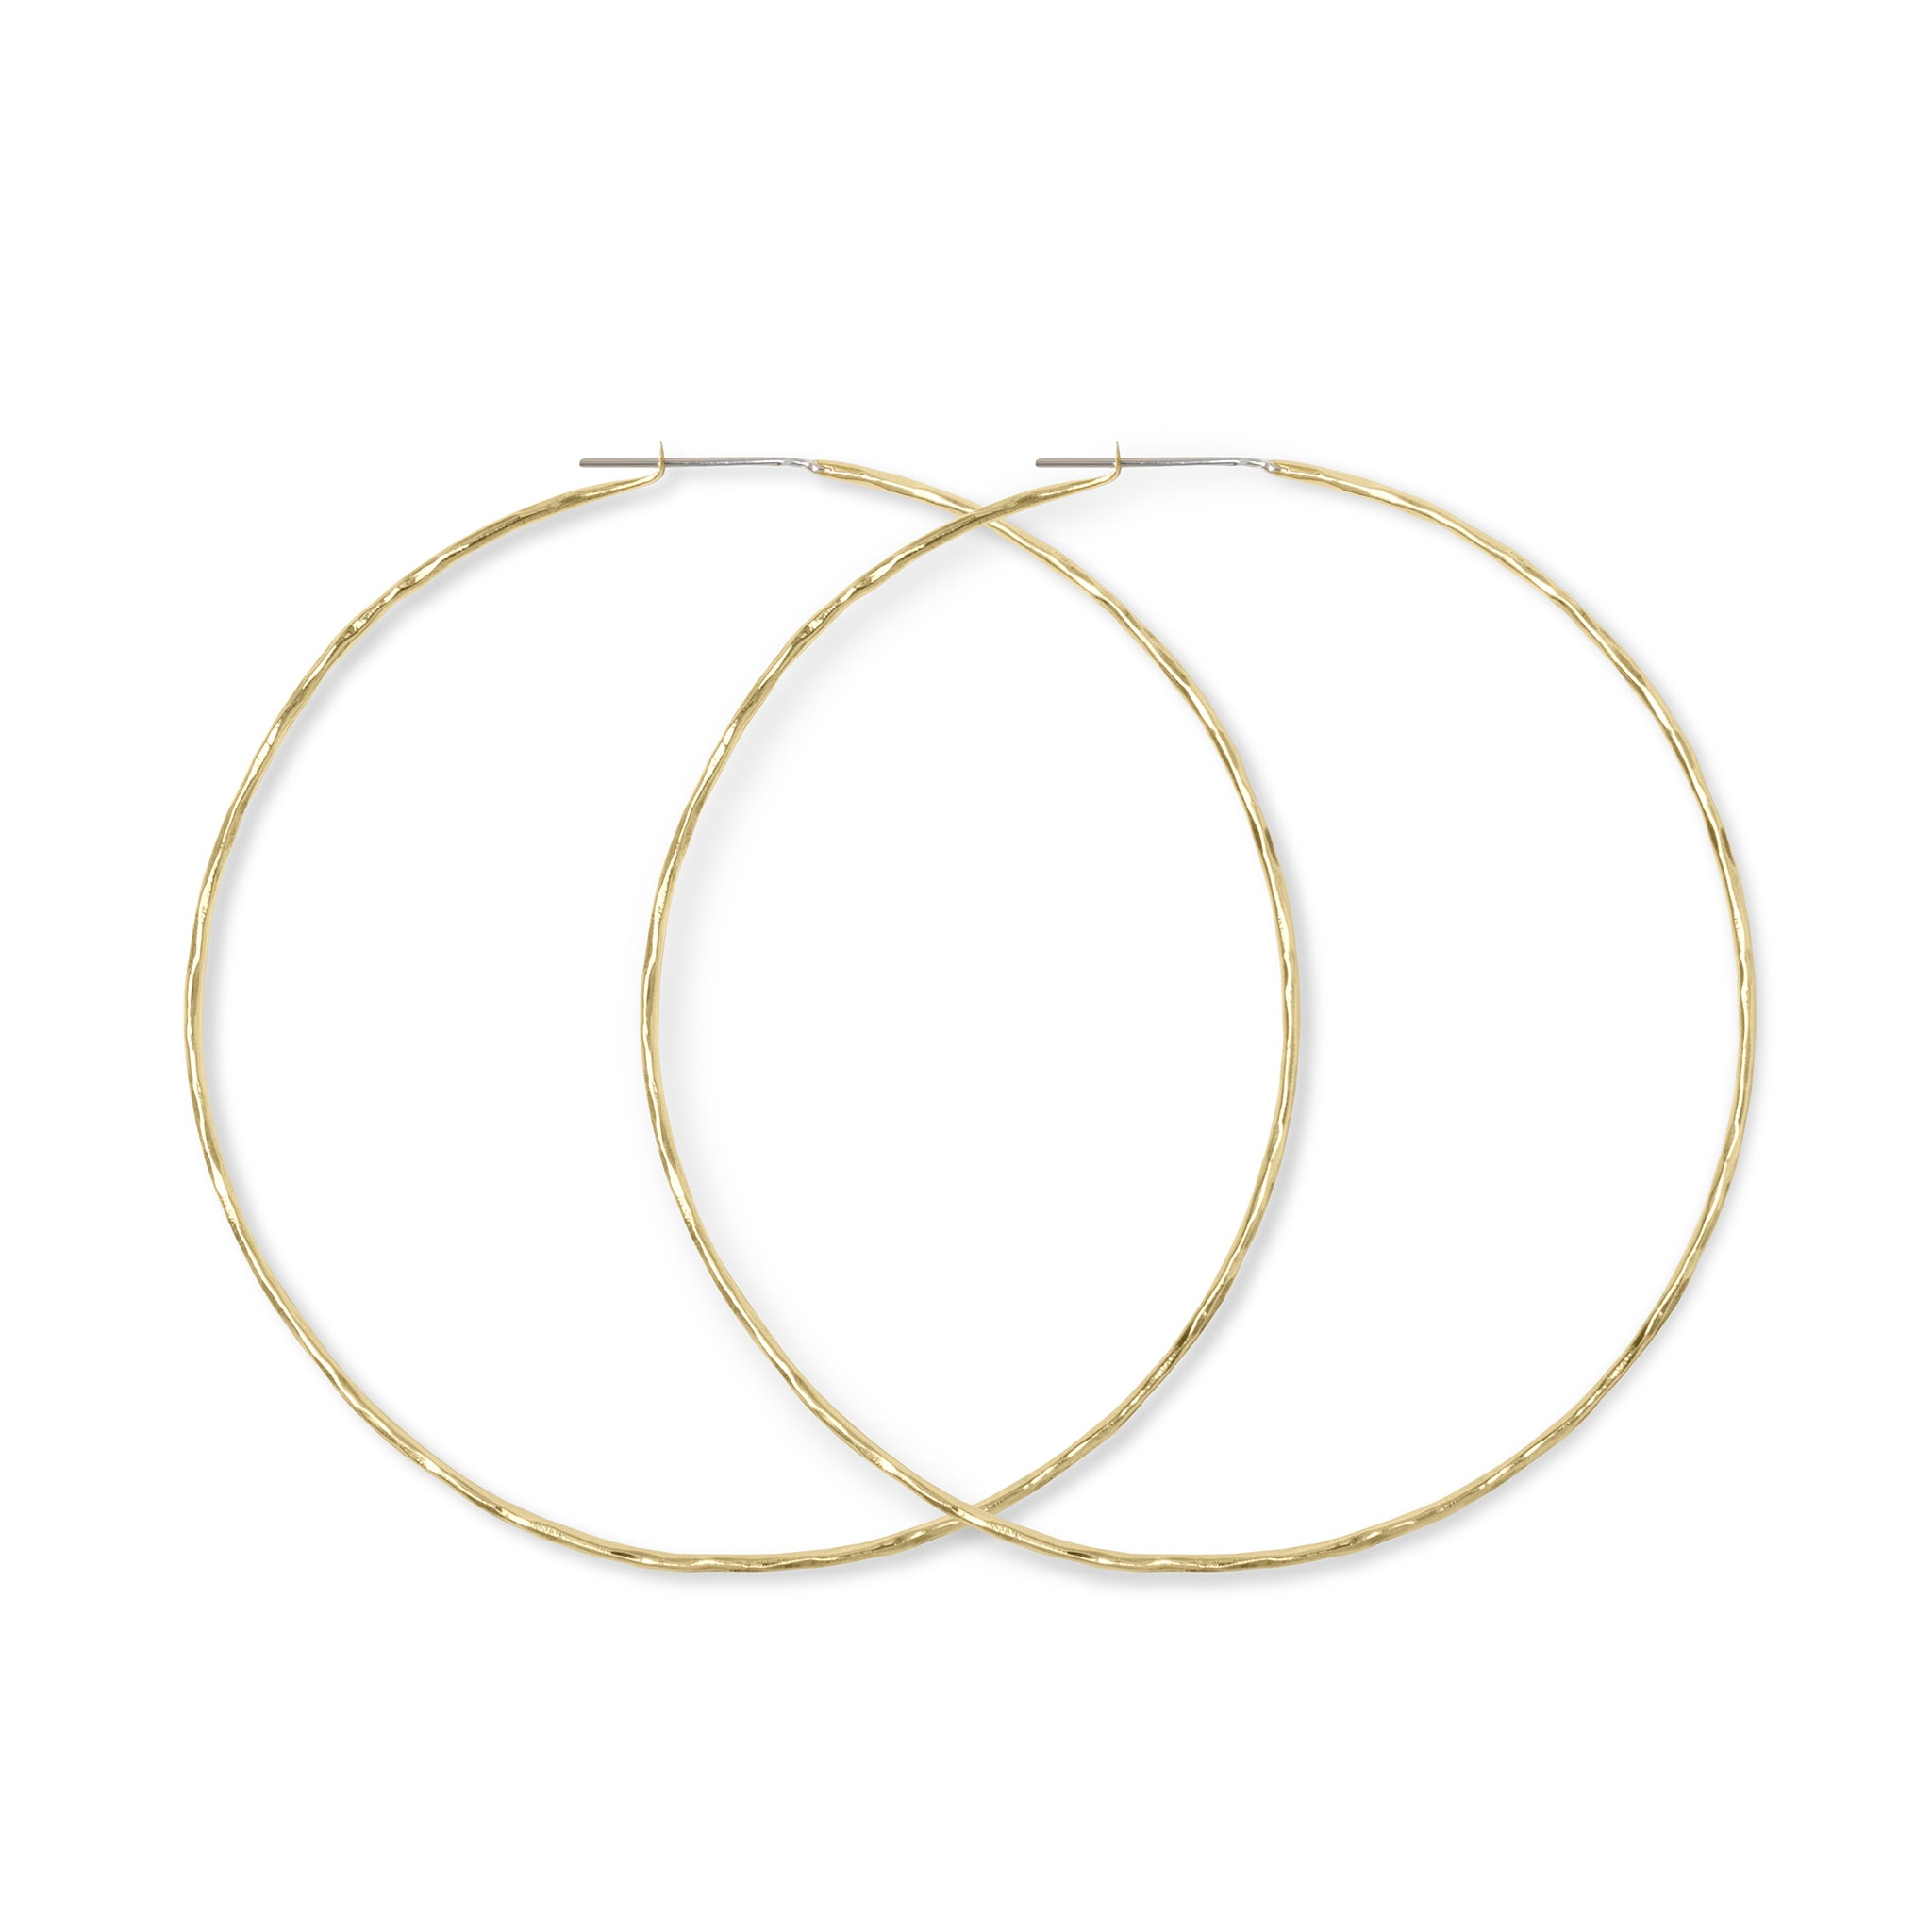 "Carladonna 4"" Round  Hoop Earrings - Lissa Bowie"